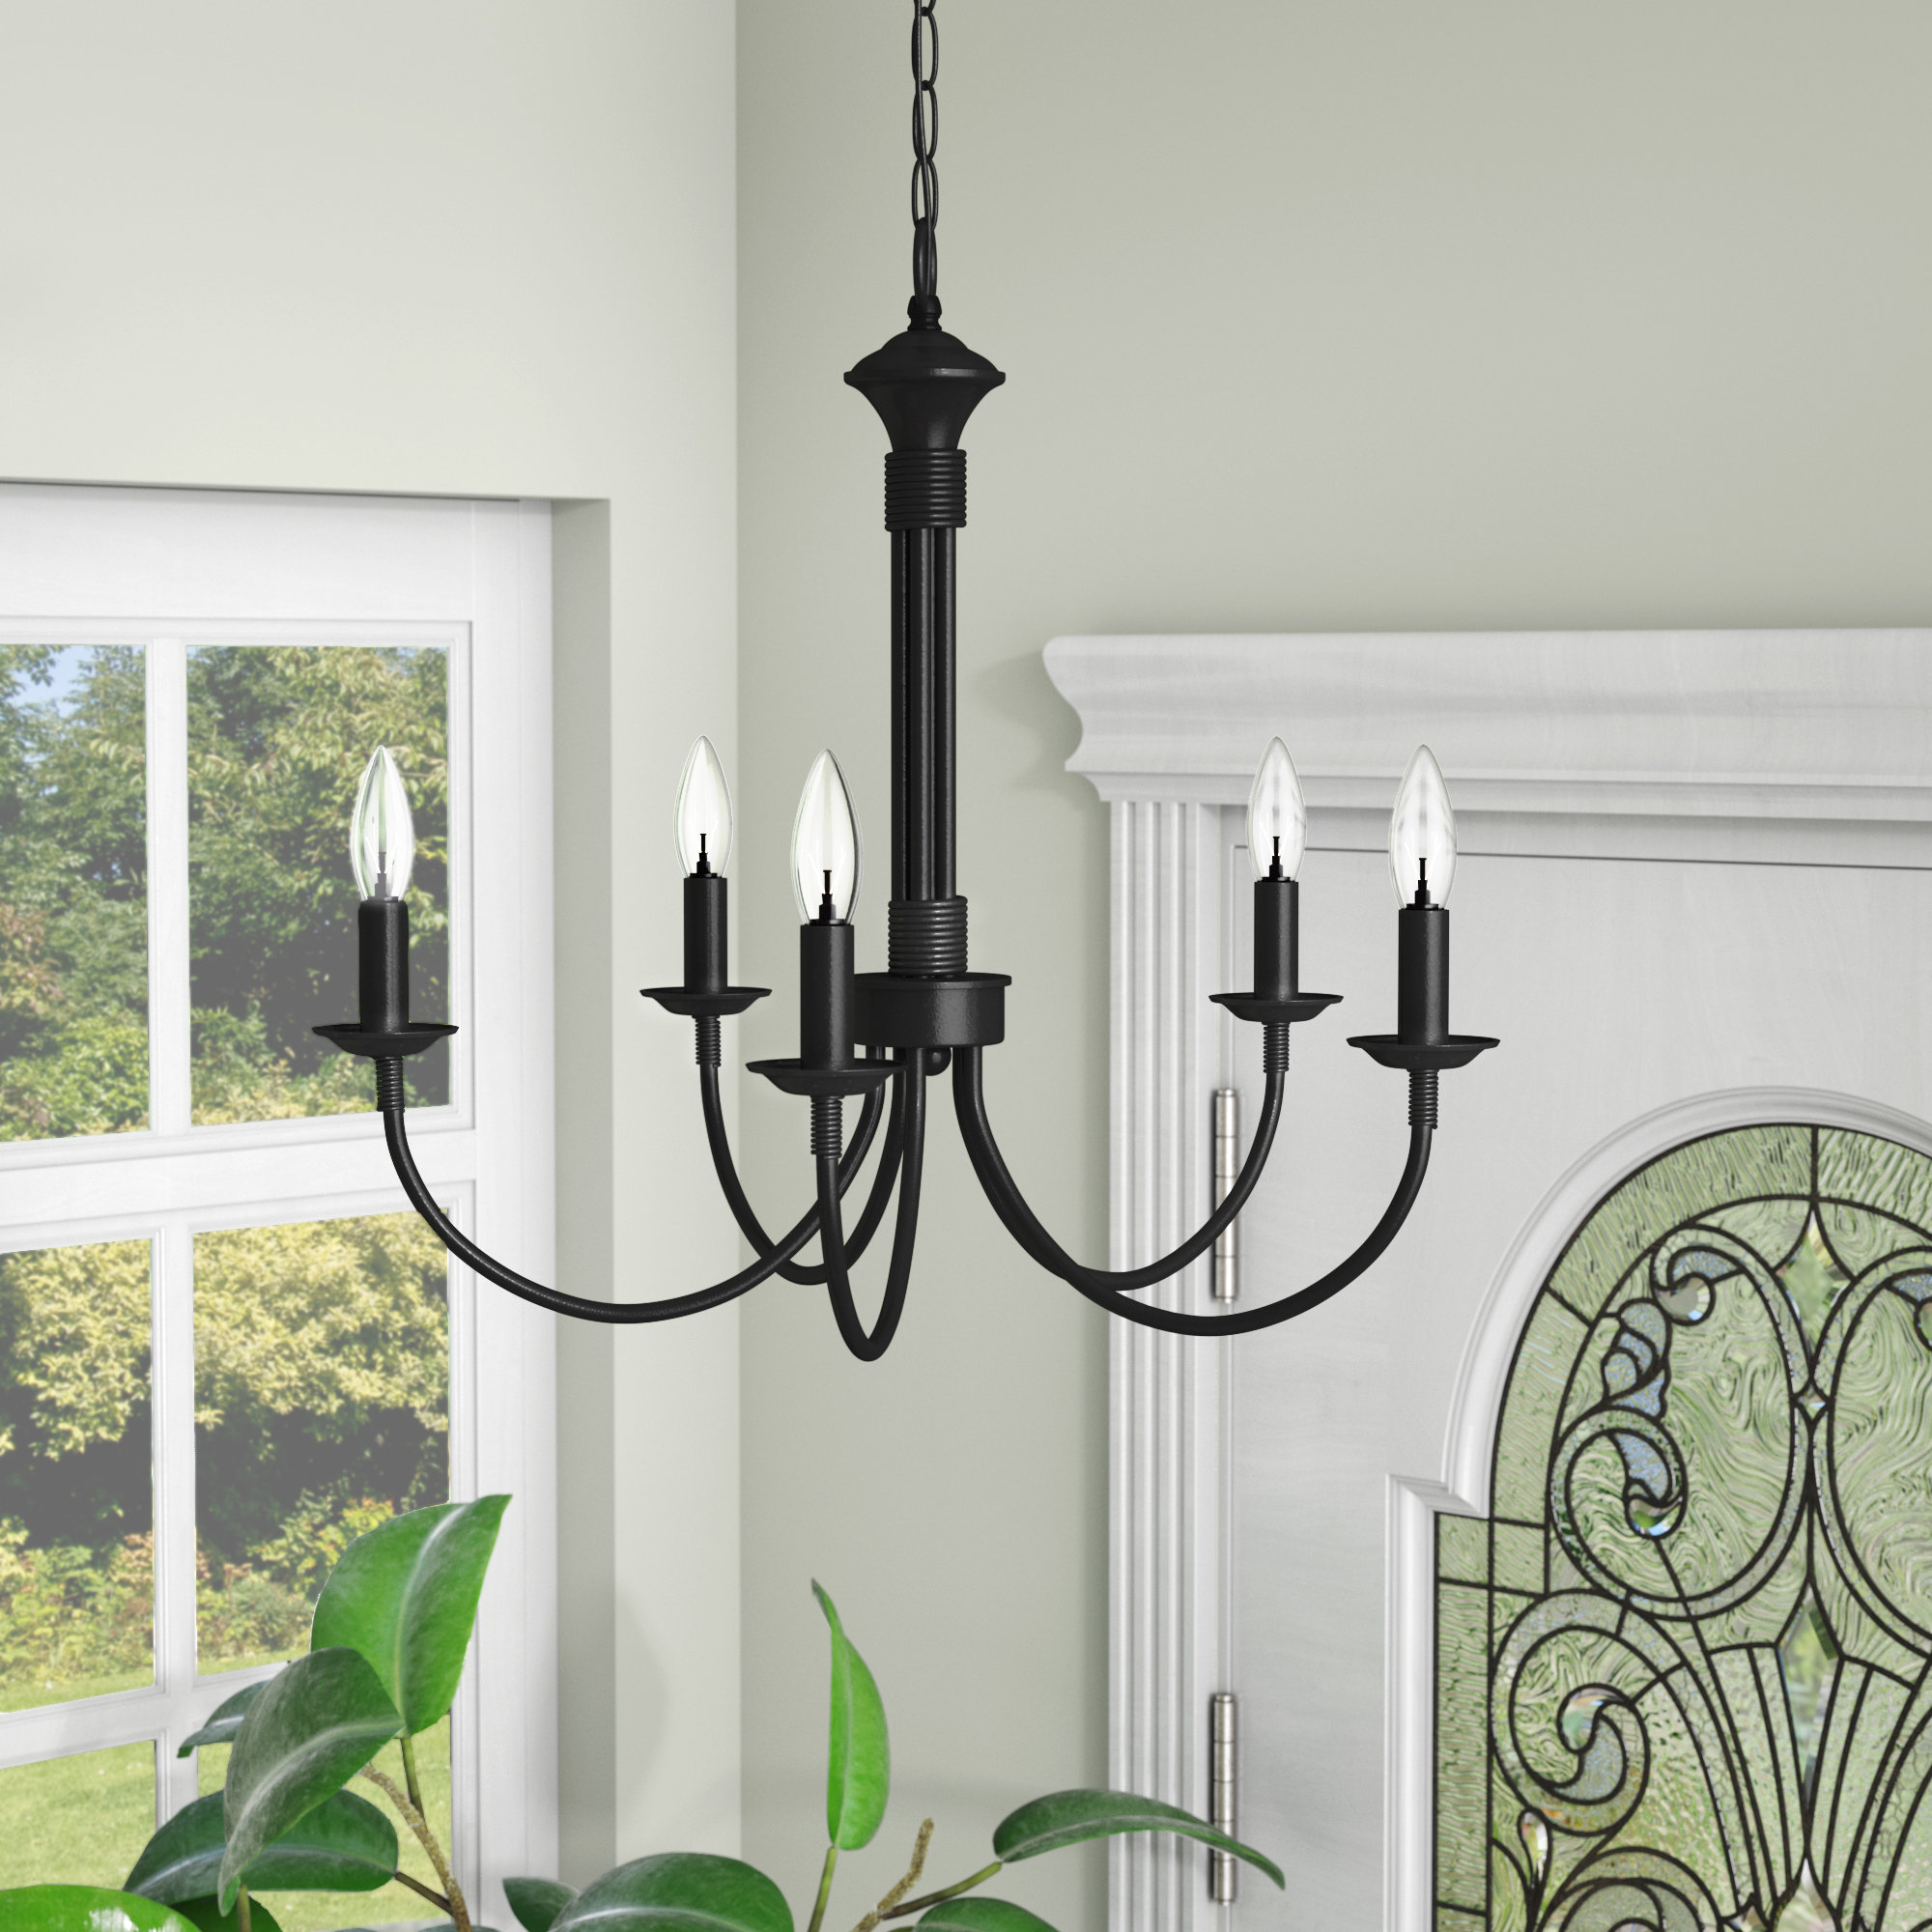 Most Recent Shaylee 5 Light Candle Style Chandelier Throughout Shaylee 6 Light Candle Style Chandeliers (View 8 of 25)